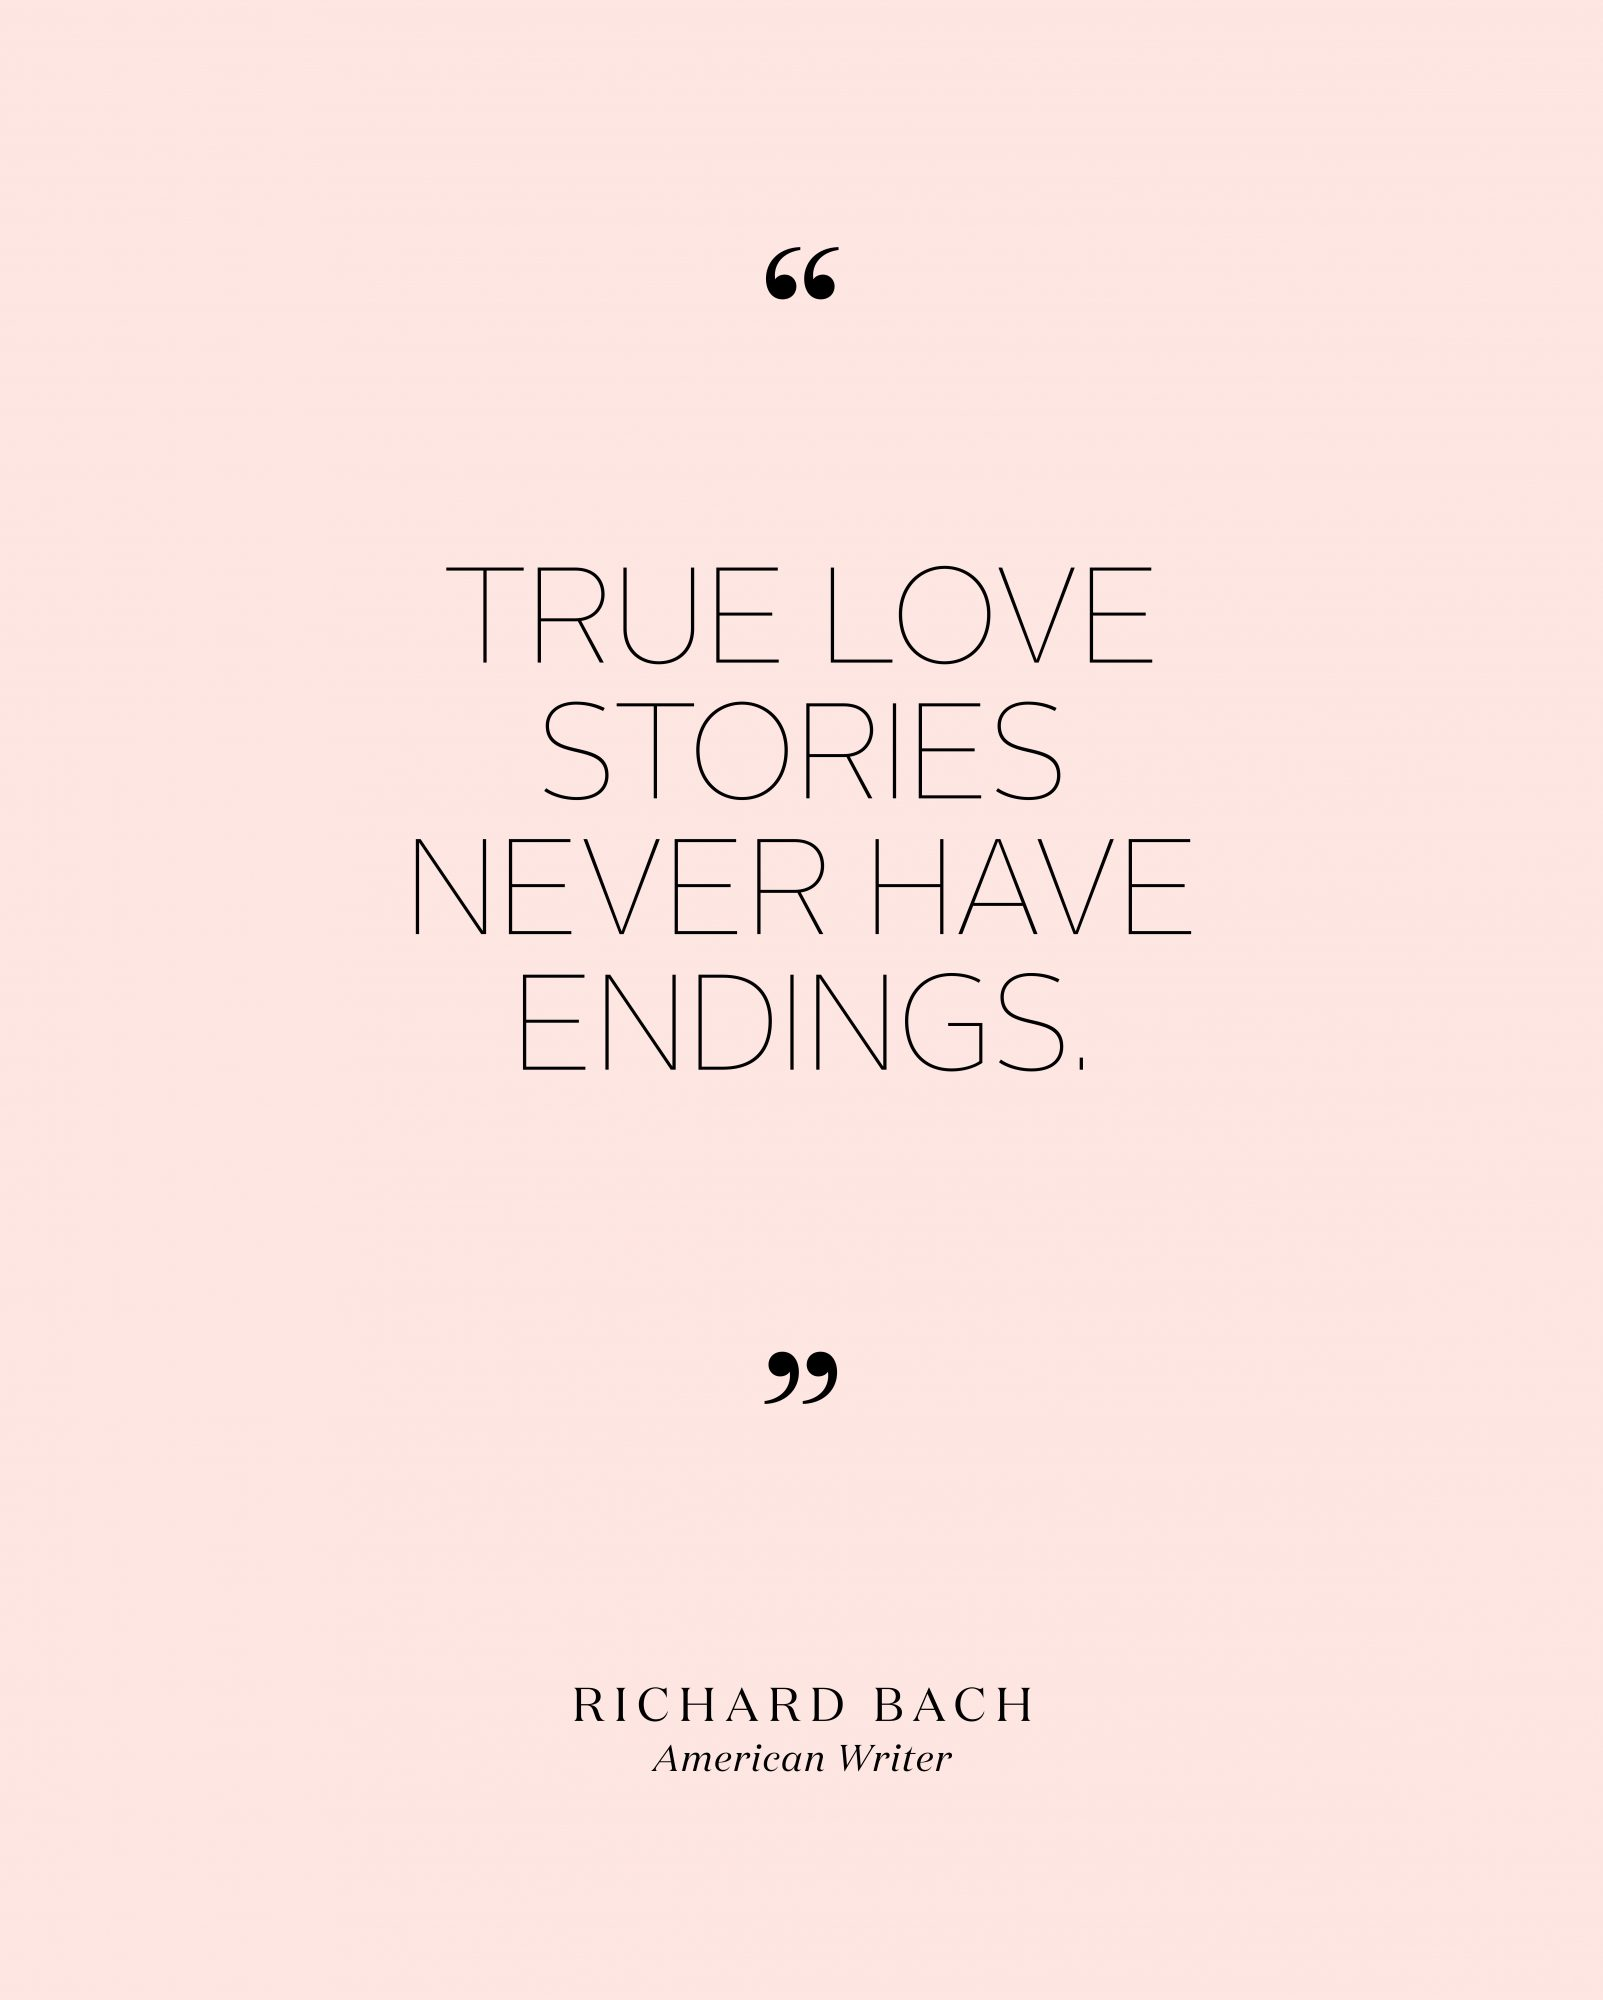 love-quotes-richard-bach-0715.jpg